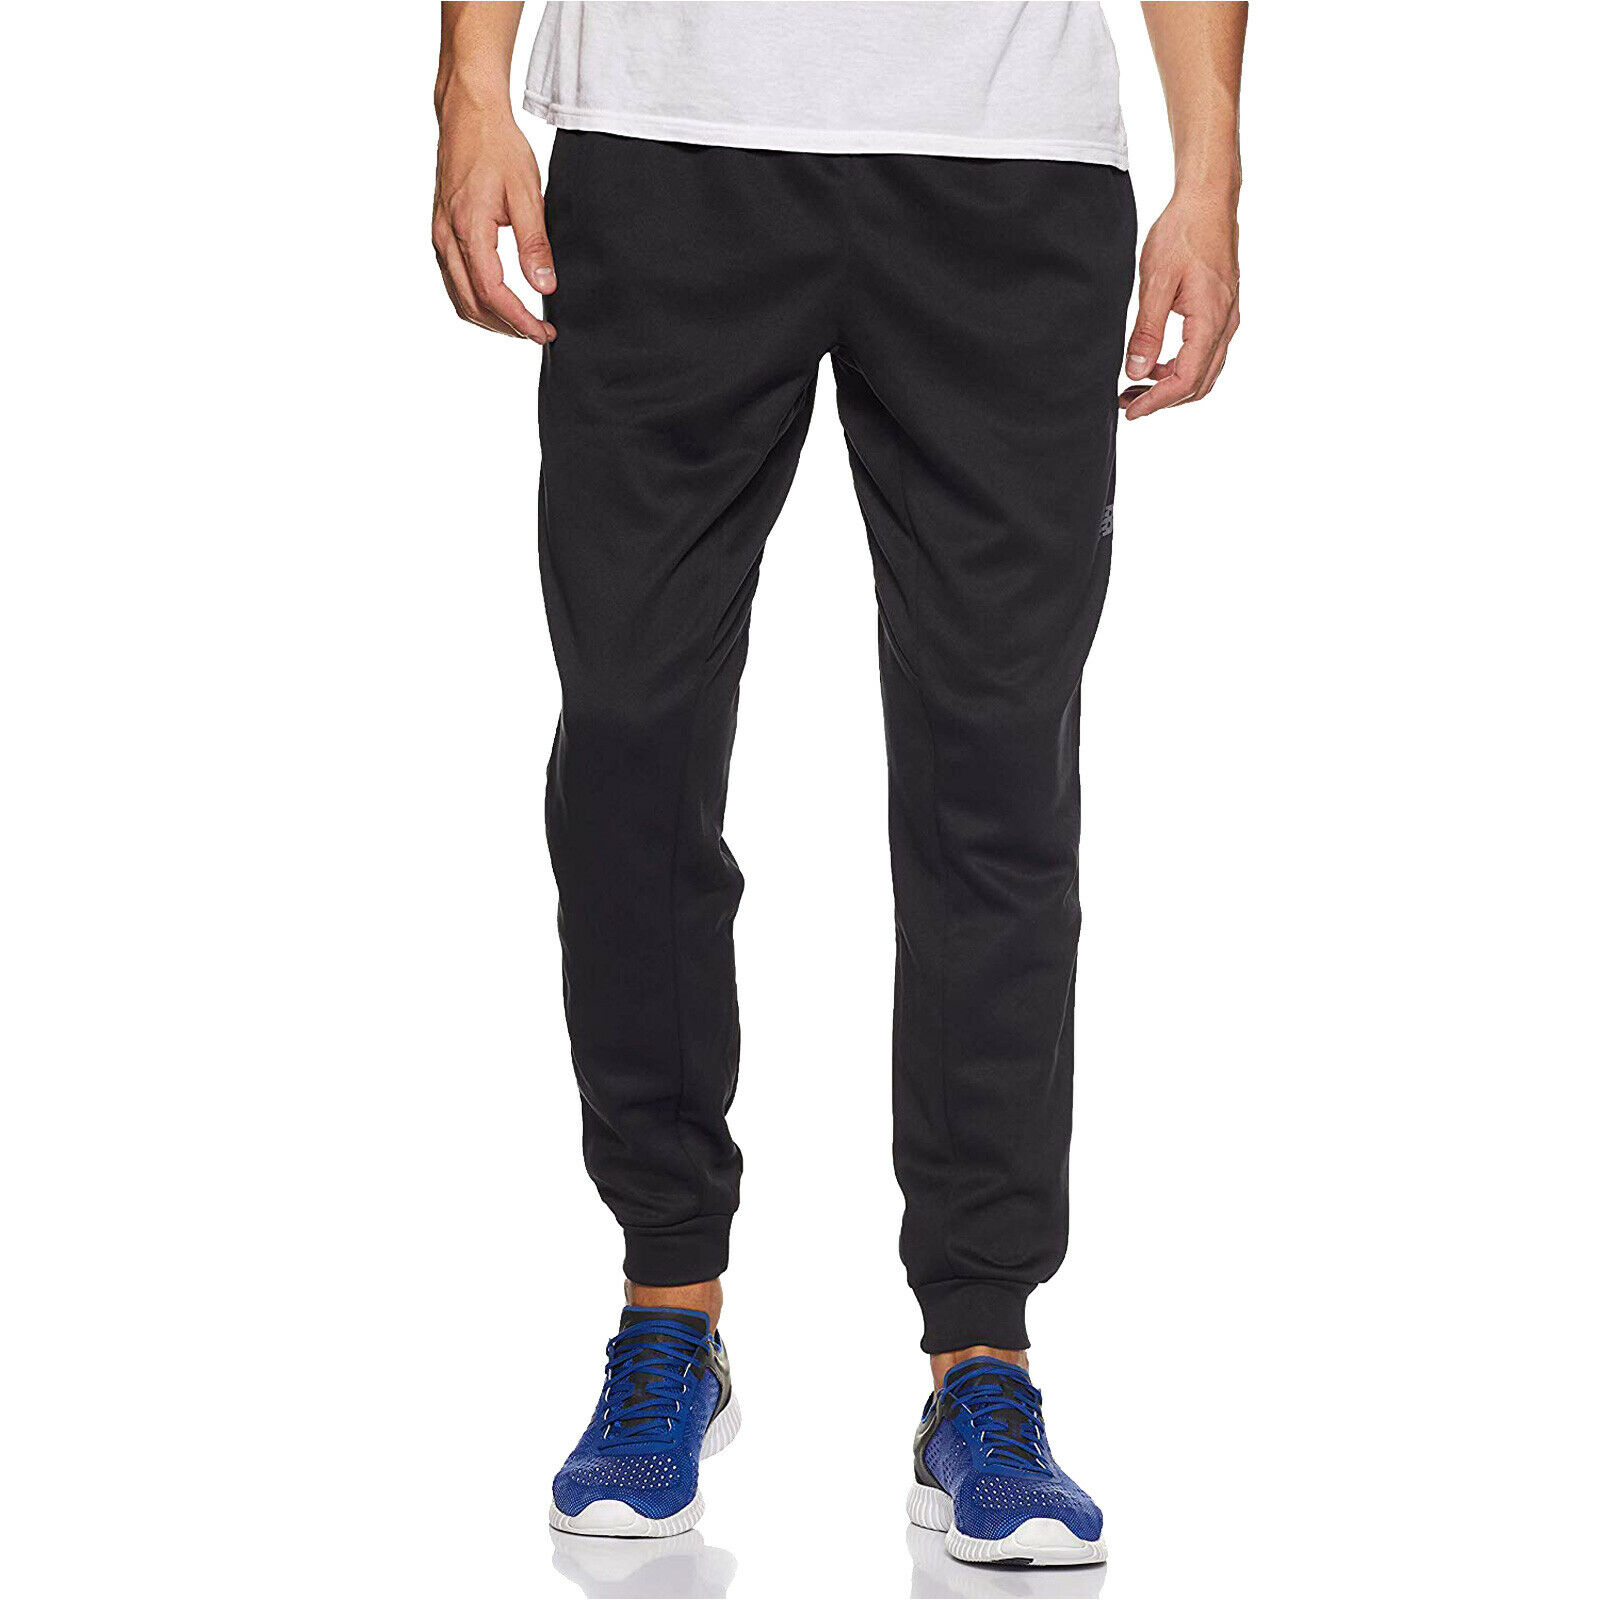 2019 New Balance Men corefleece Jogger Pants Sweat  Suit  to provide you with a pleasant online shopping